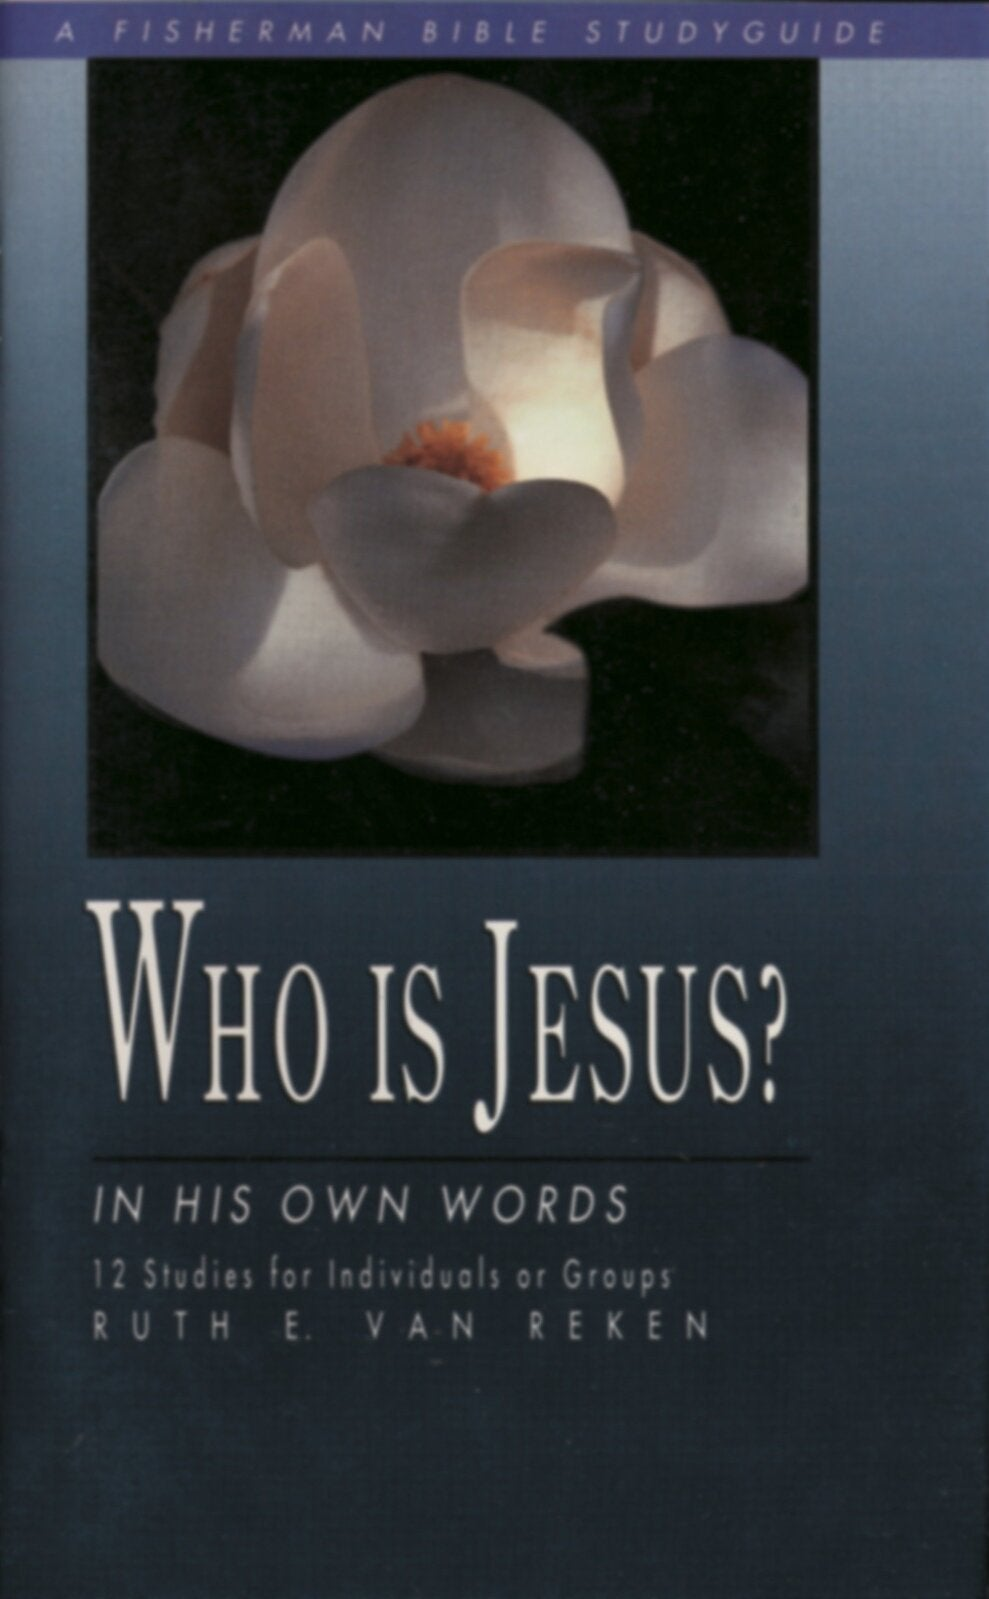 Who is Jesus? In His Own Words: 12 Studies (Fisherman Bible Study Guides)